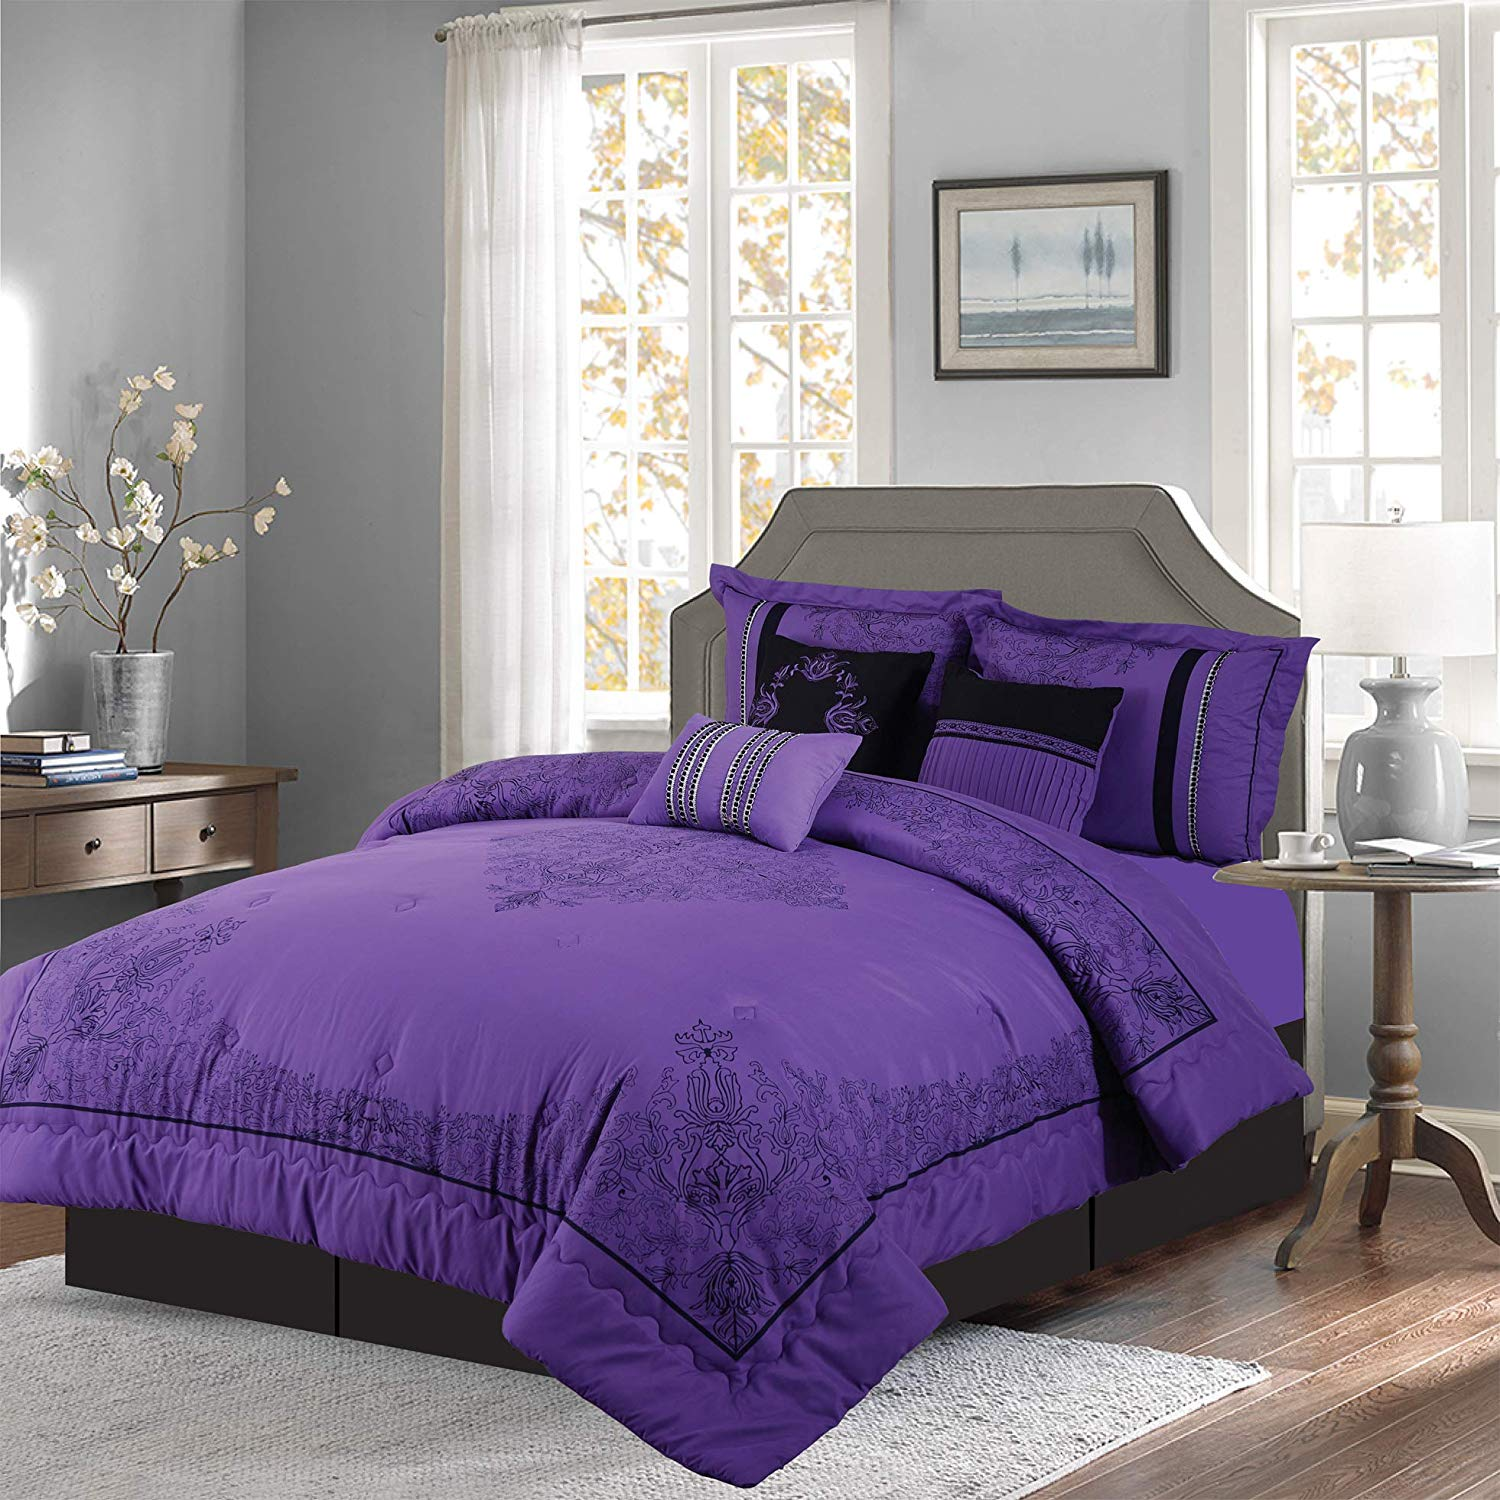 Empire Home Dawn 7 Piece Comforter Set Over Sized Bed In A Bag Full Size Purple & Black NEW ARRIVAL 50% SALE